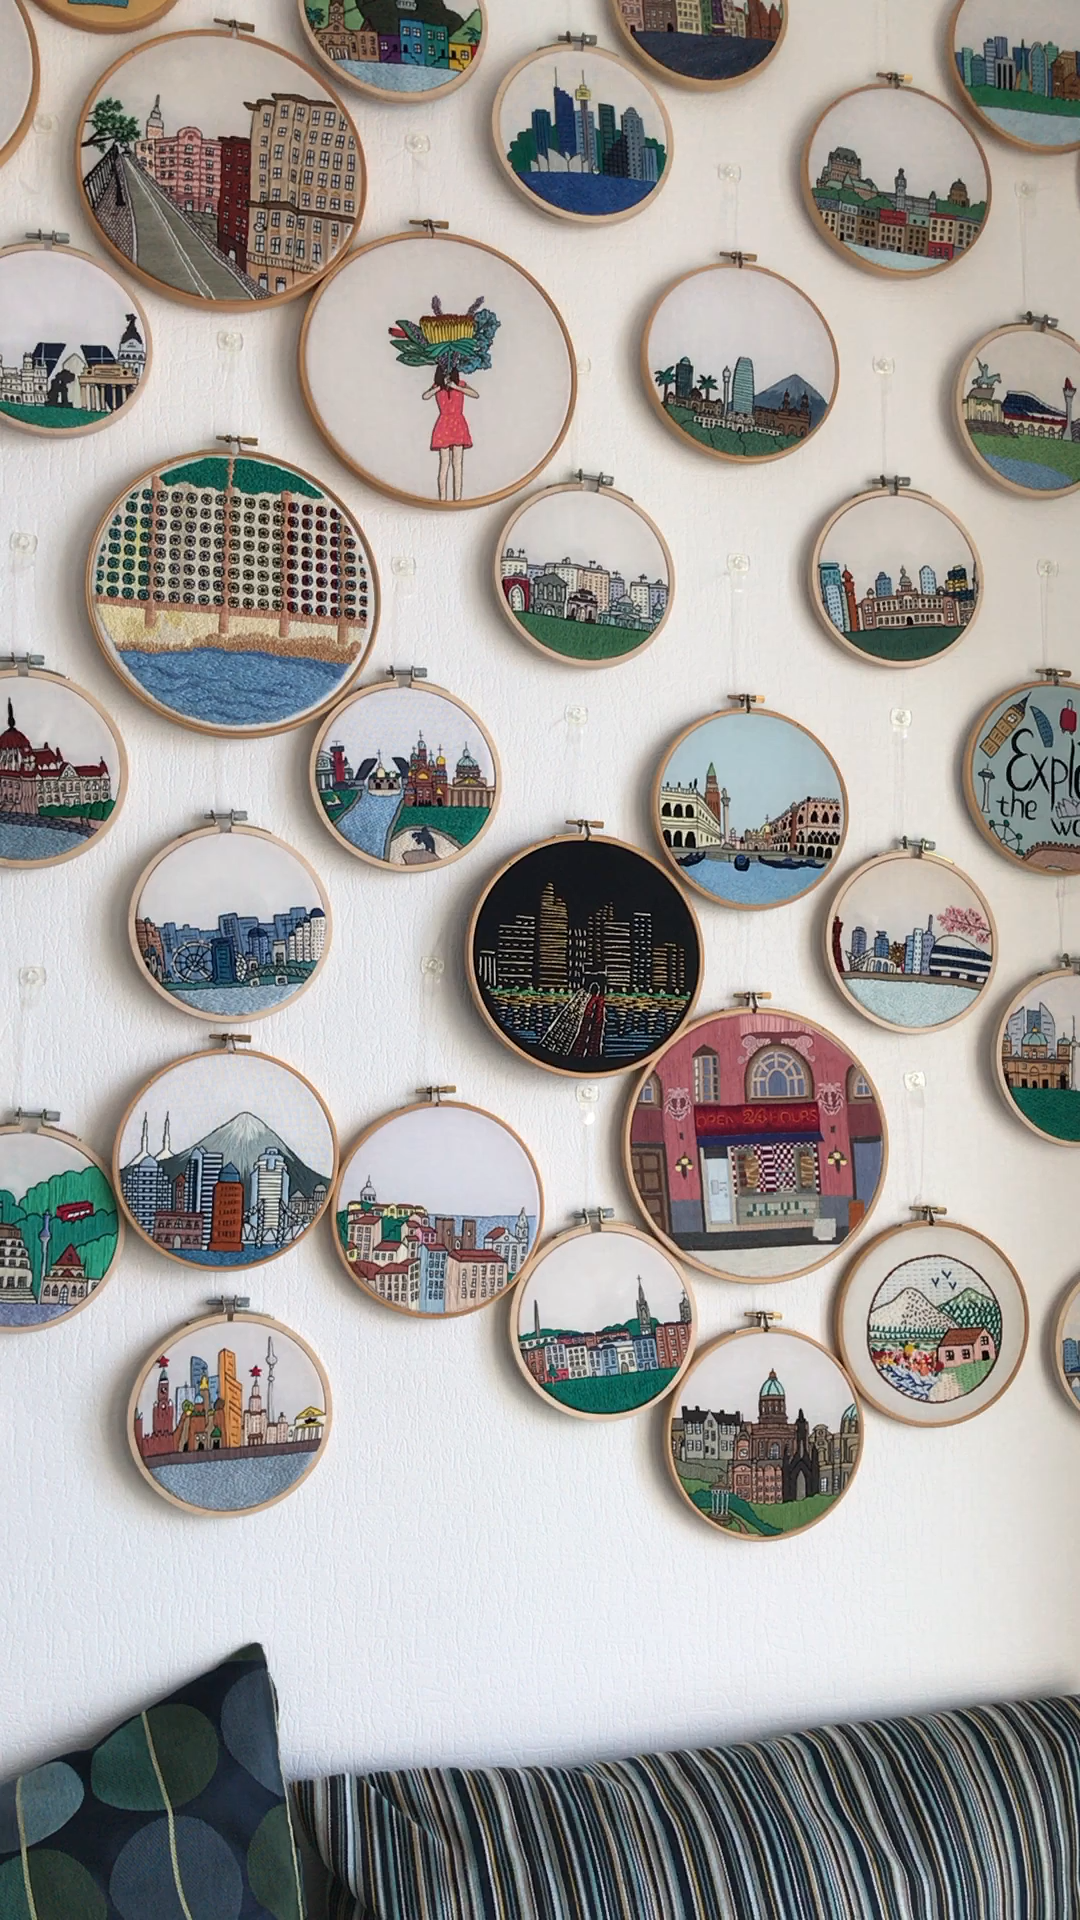 Architectural Hand Embroidery Hoop Wall Video Embroidery Hoop Wall Embroidery Hoop Wall Art Embroidery Patterns